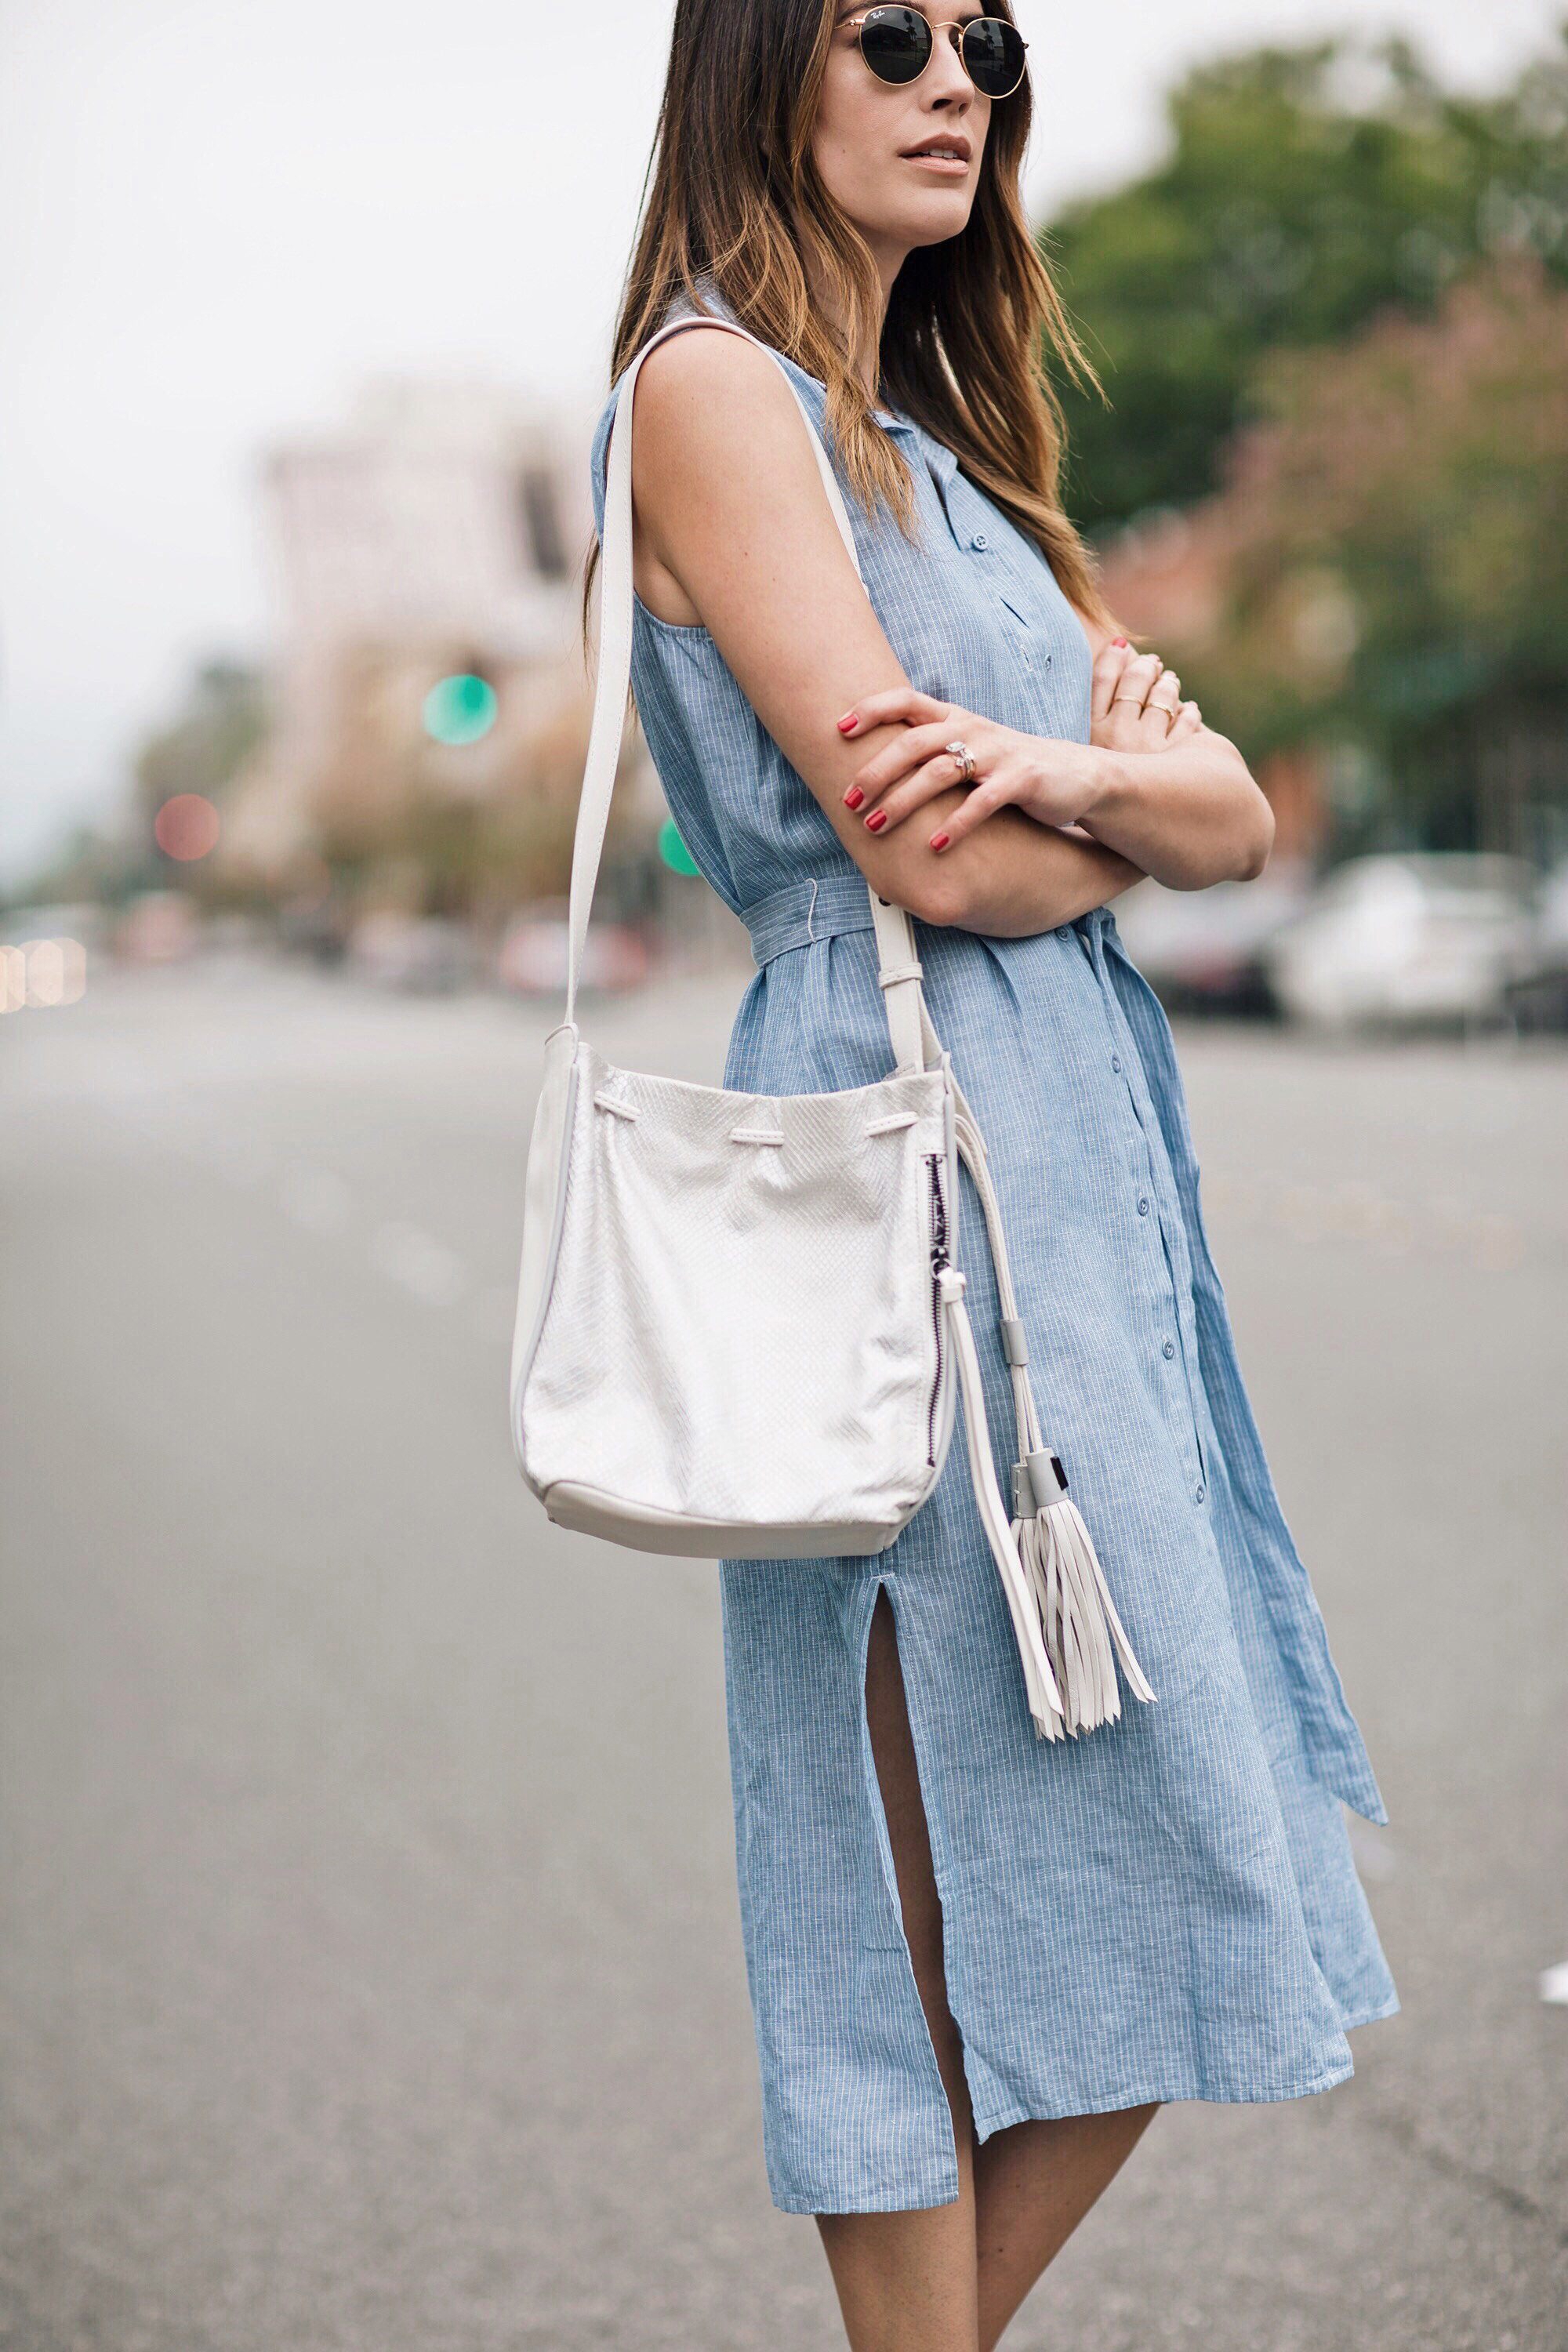 White Leather Bucket Bag Blogger Style